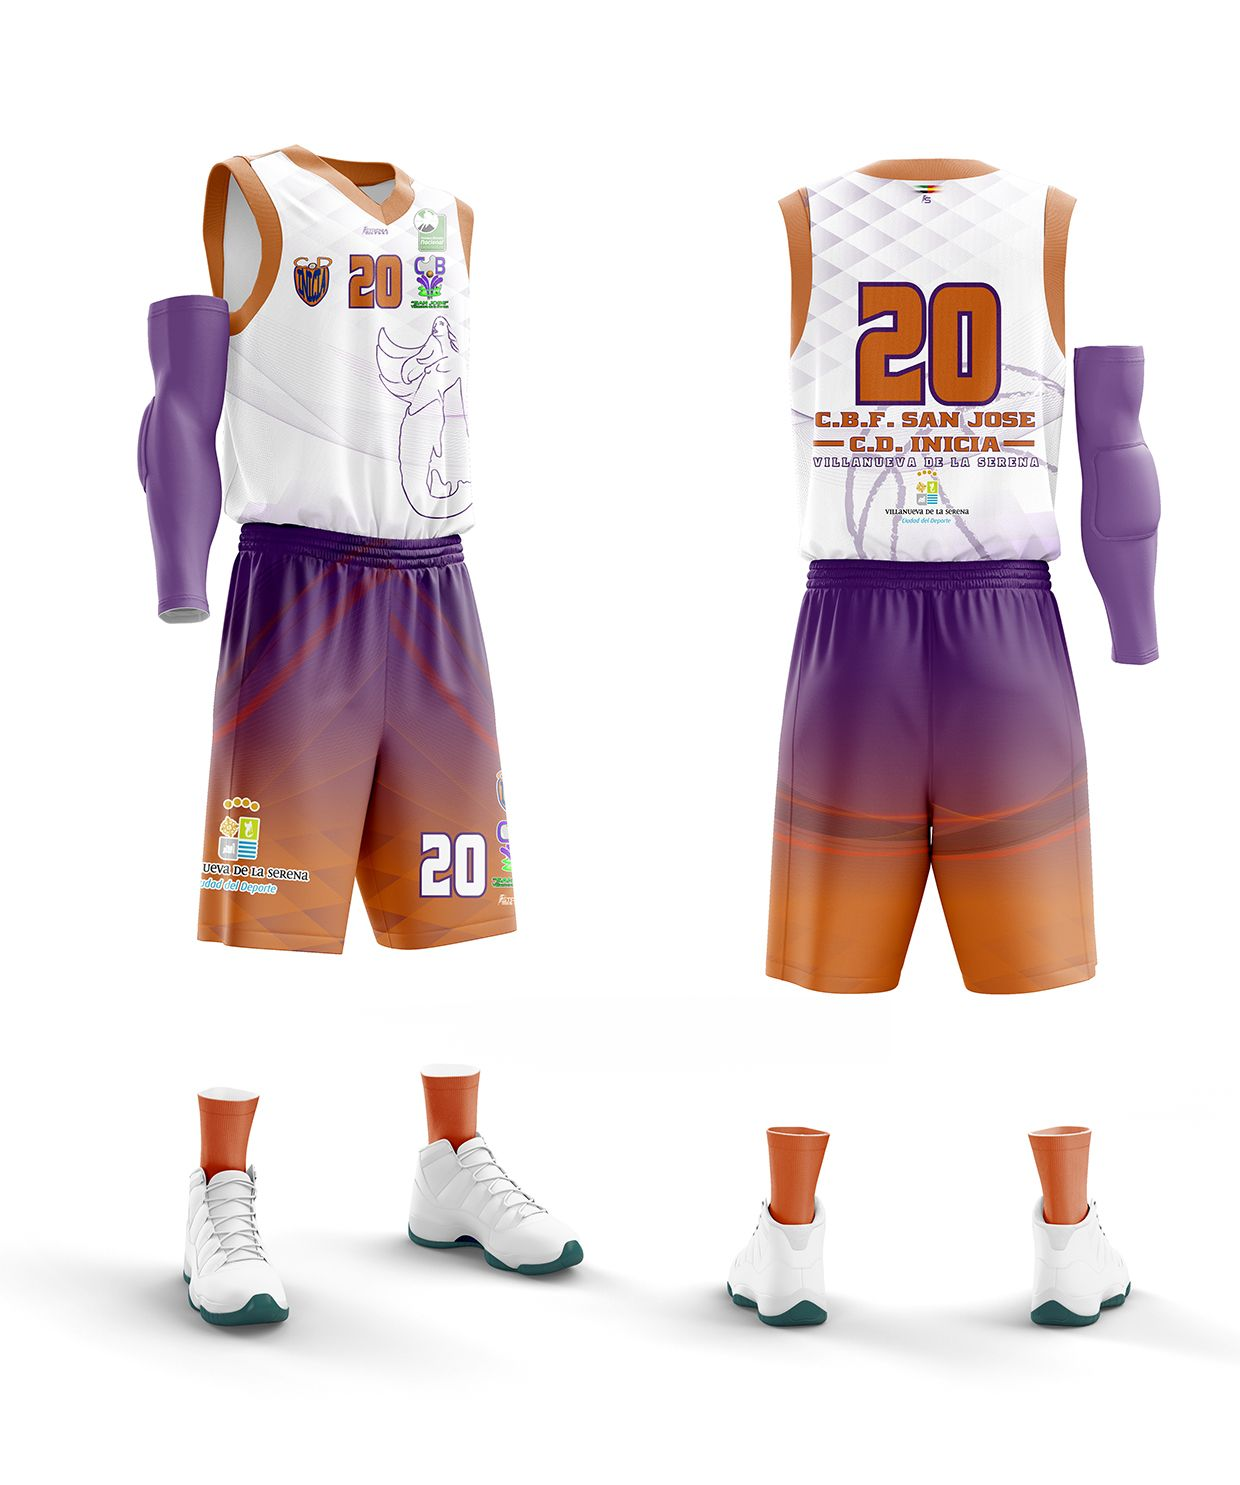 Pin de GRIND UP en Menswear Uniformes de baloncesto